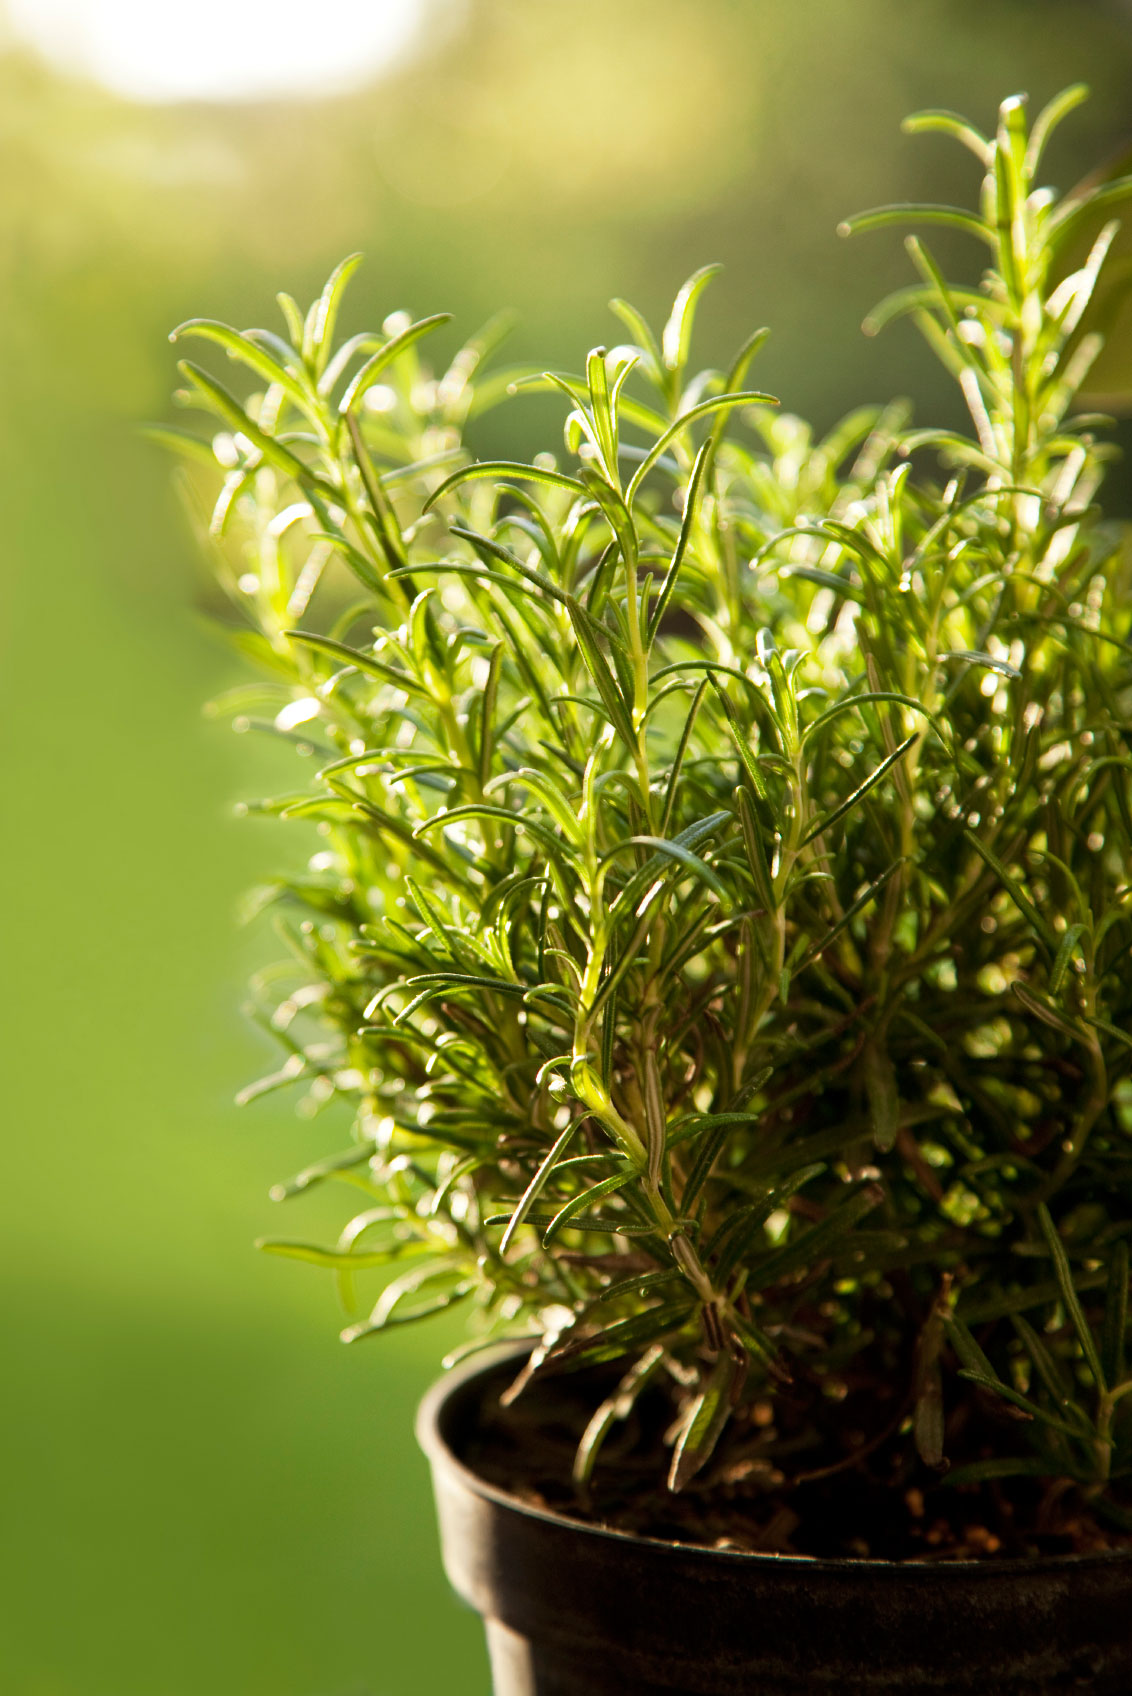 Rosemary Container Care Tips For Growing Rosemary In Pots